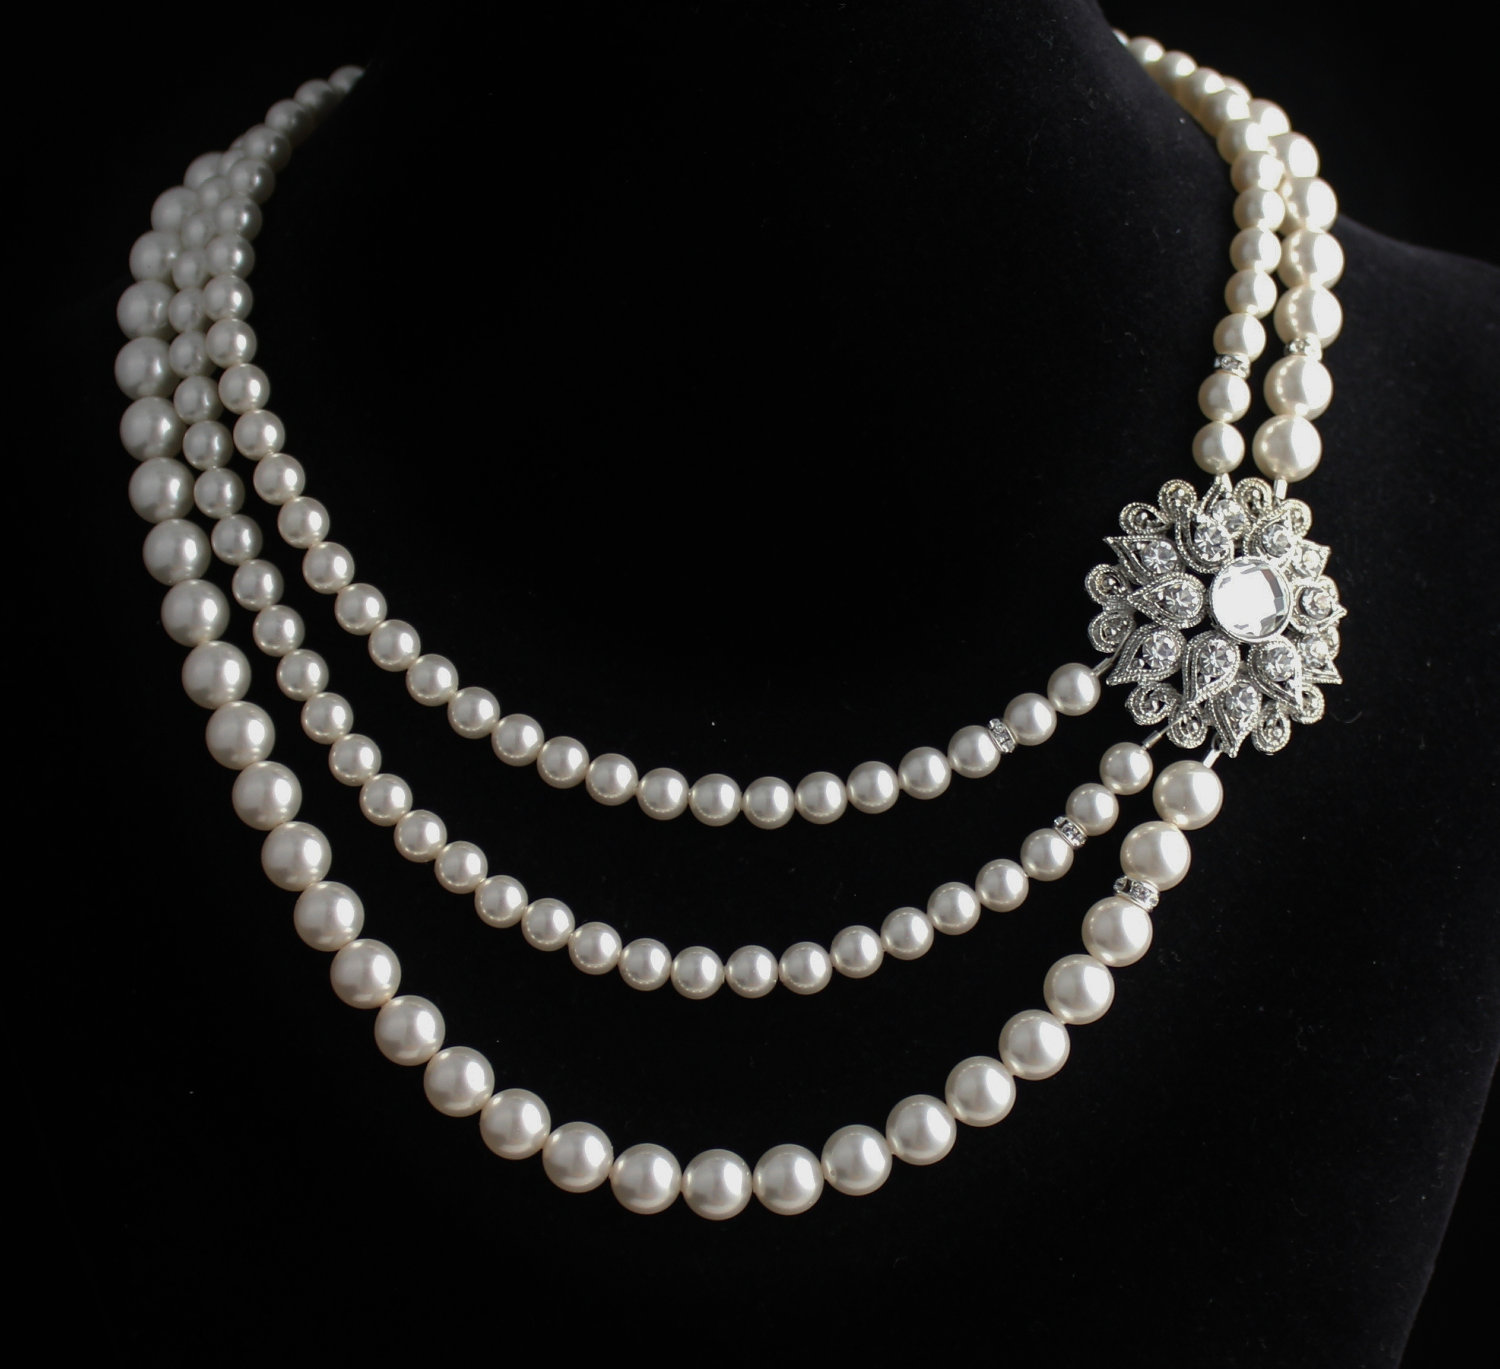 Unique Pearl Necklace Designs Jewelry World